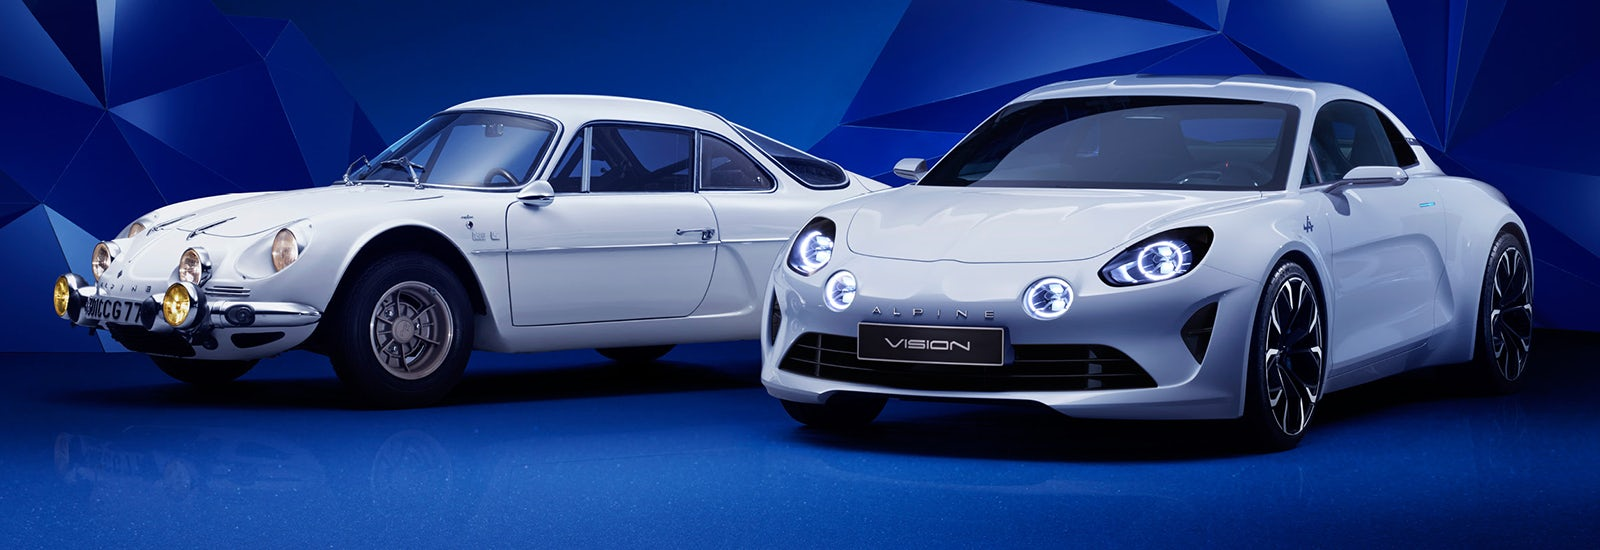 New Renault Alpine Price Specs And Release Date Carwow